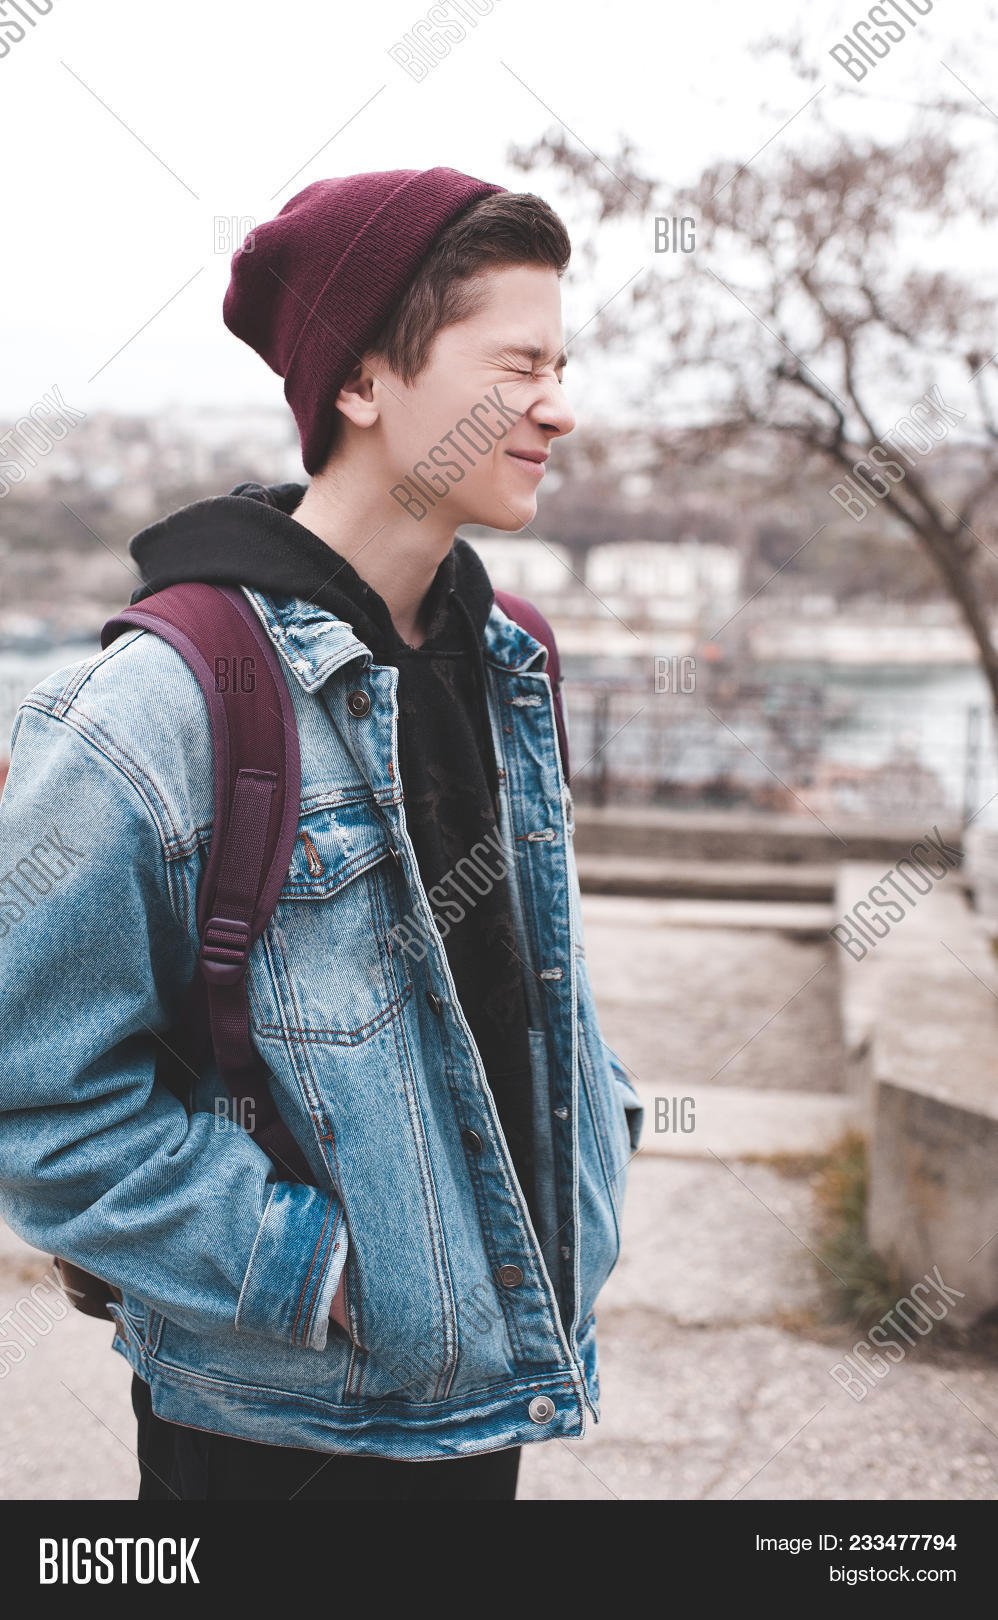 Funny teen boy 14-16 year old laughing outdoors. Wearing denim jacket b795f3ed130